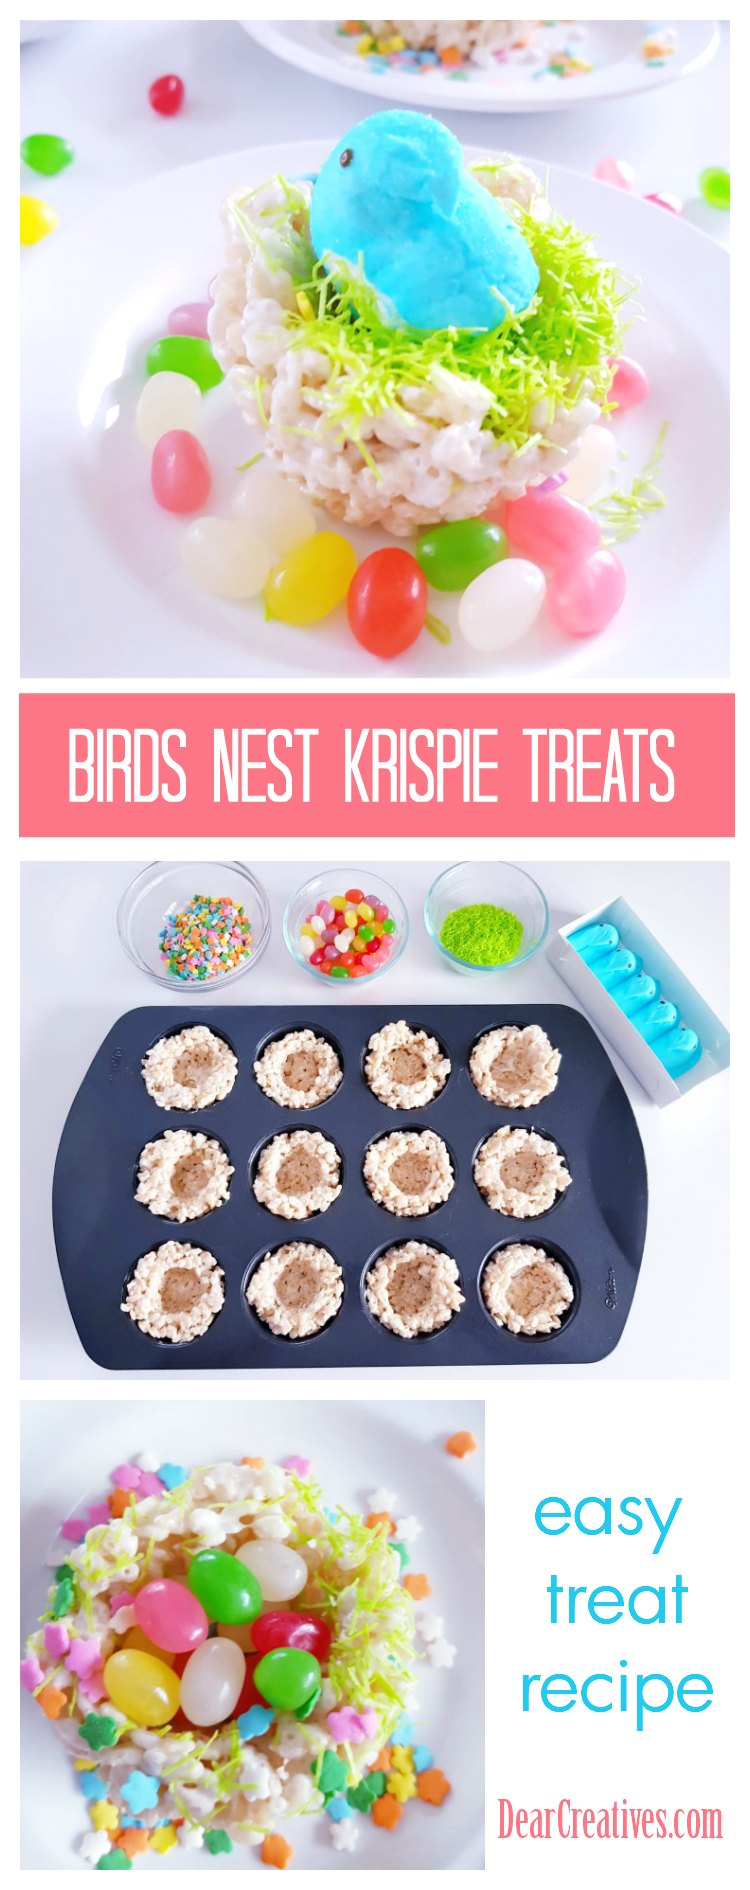 Birds nest krispie treats | This is a fun and easy no bake treat bonus, grab a discount for your candies. DearCreatives.com #treats #birdsnestcookies #birdsnestkrispietreats #PEEPSONALITY #sponsored